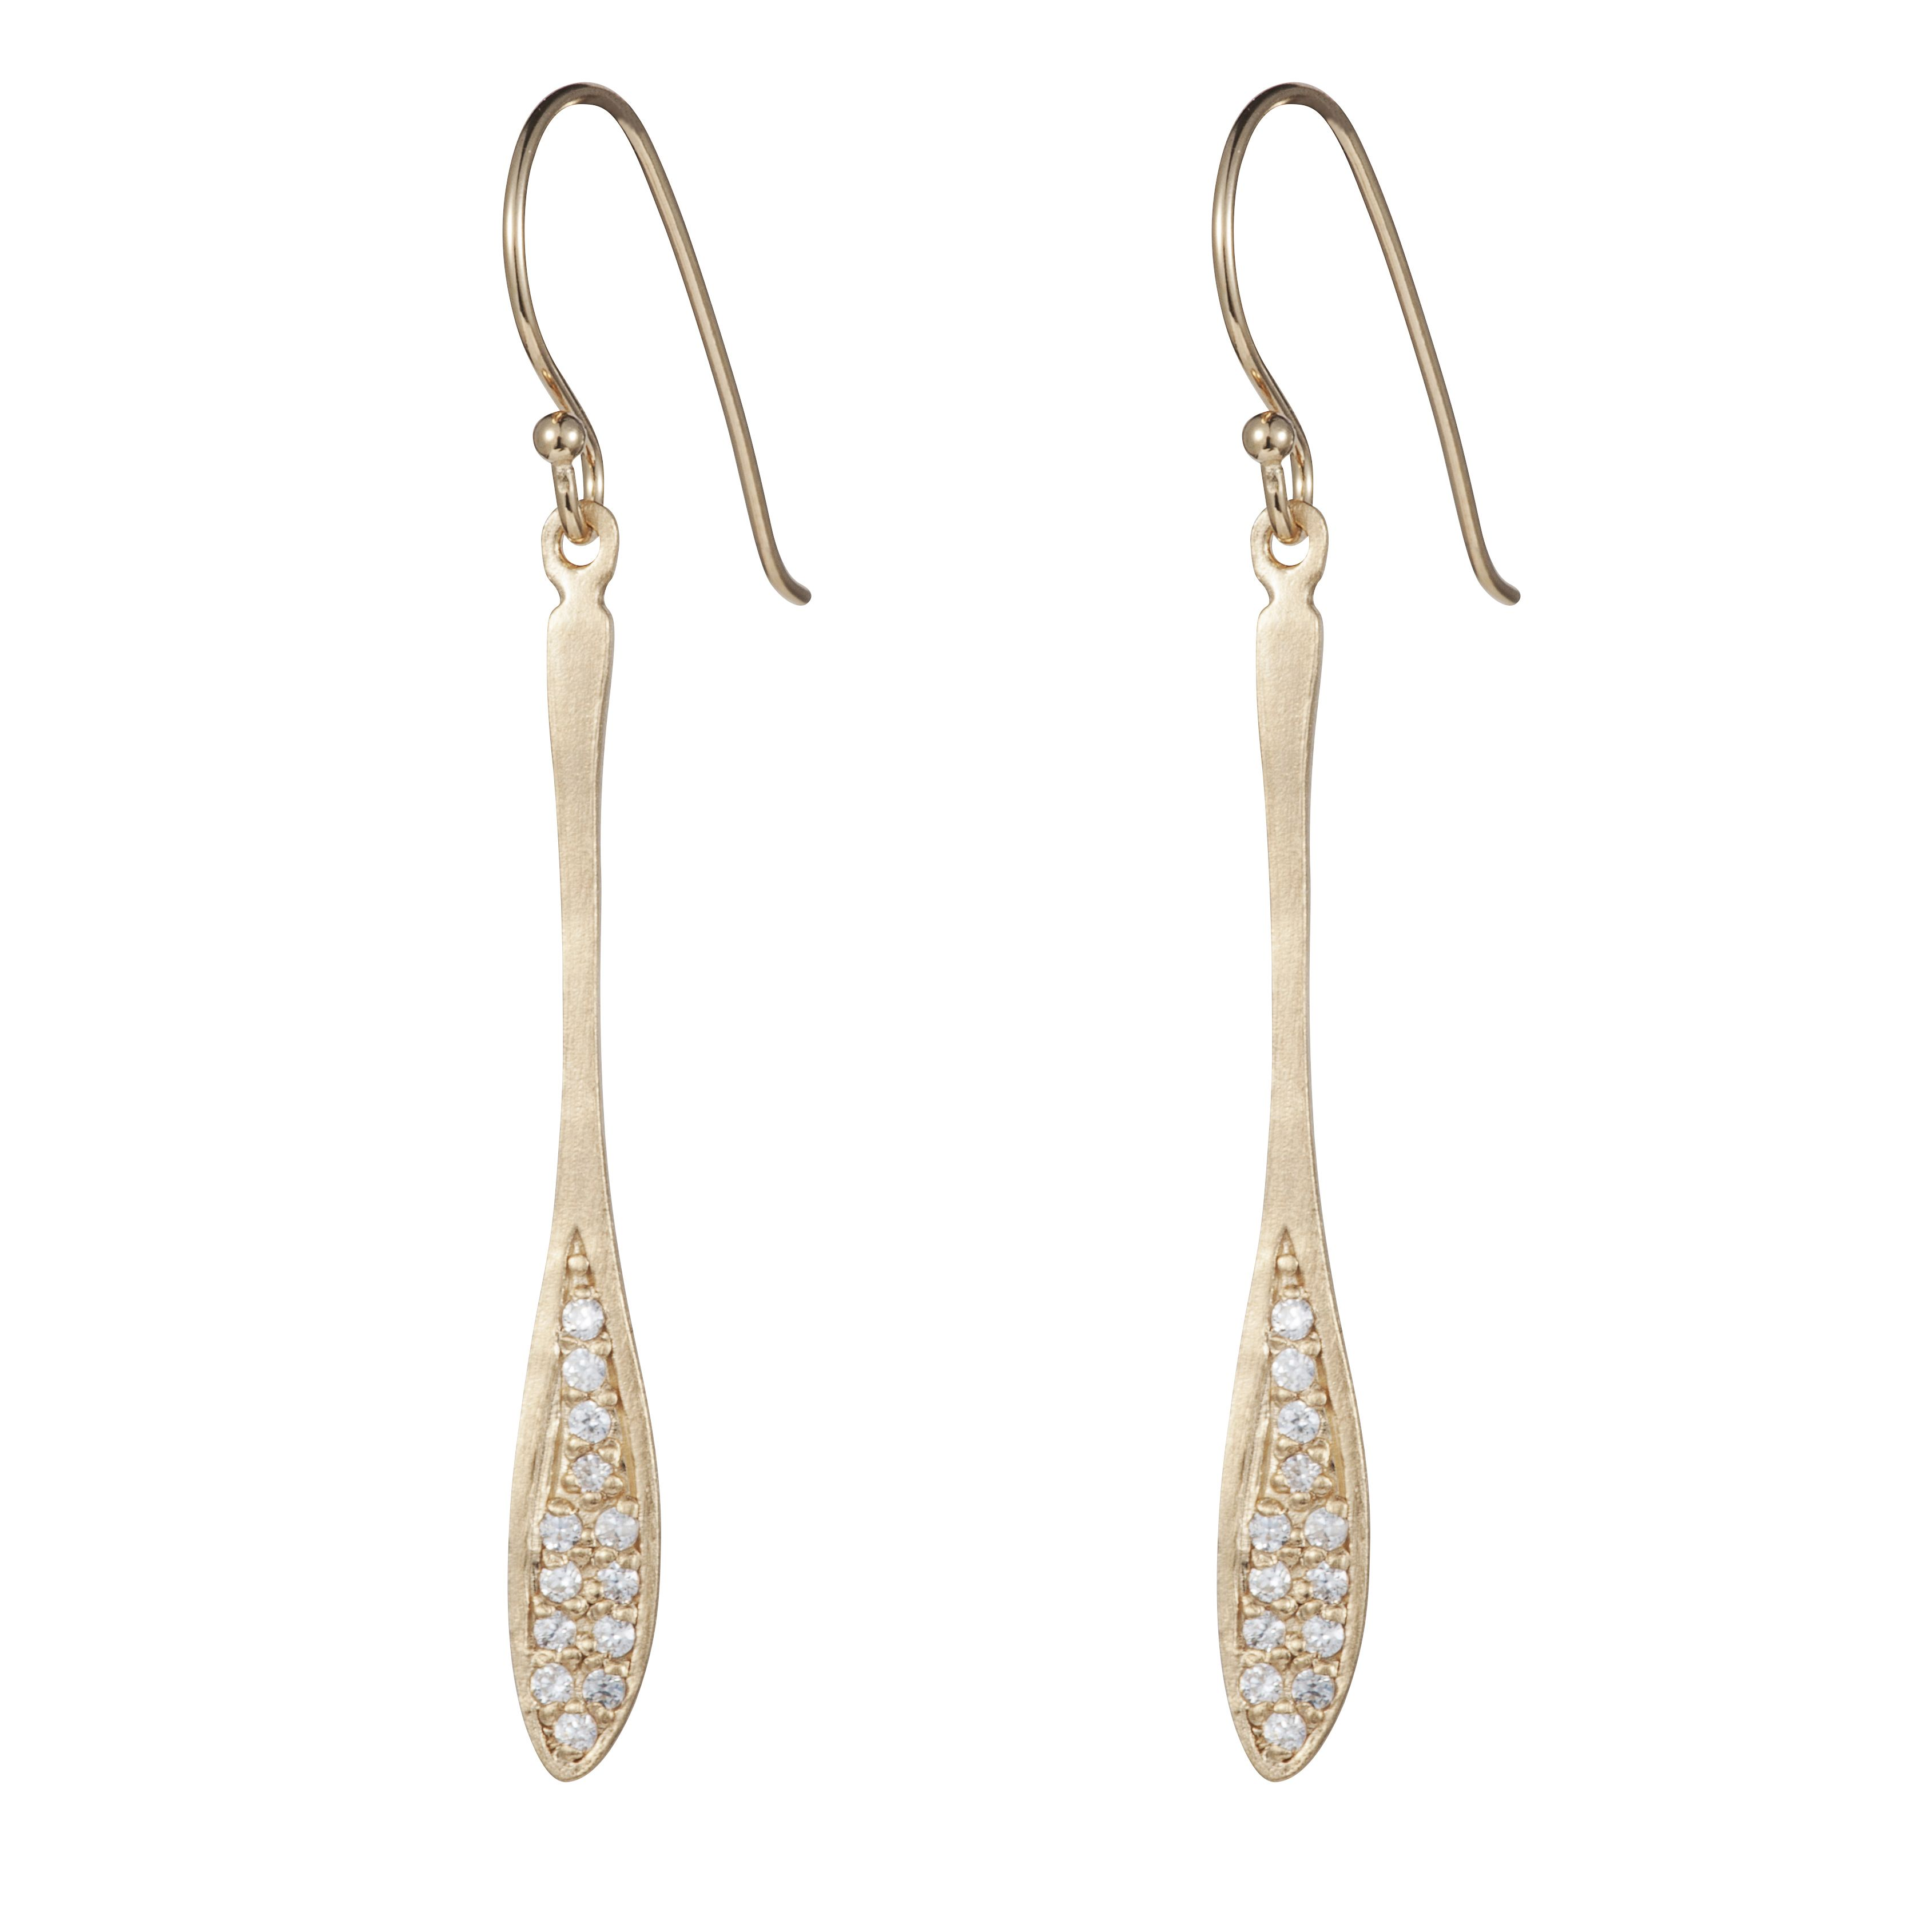 Sterling silver signature drop earrings